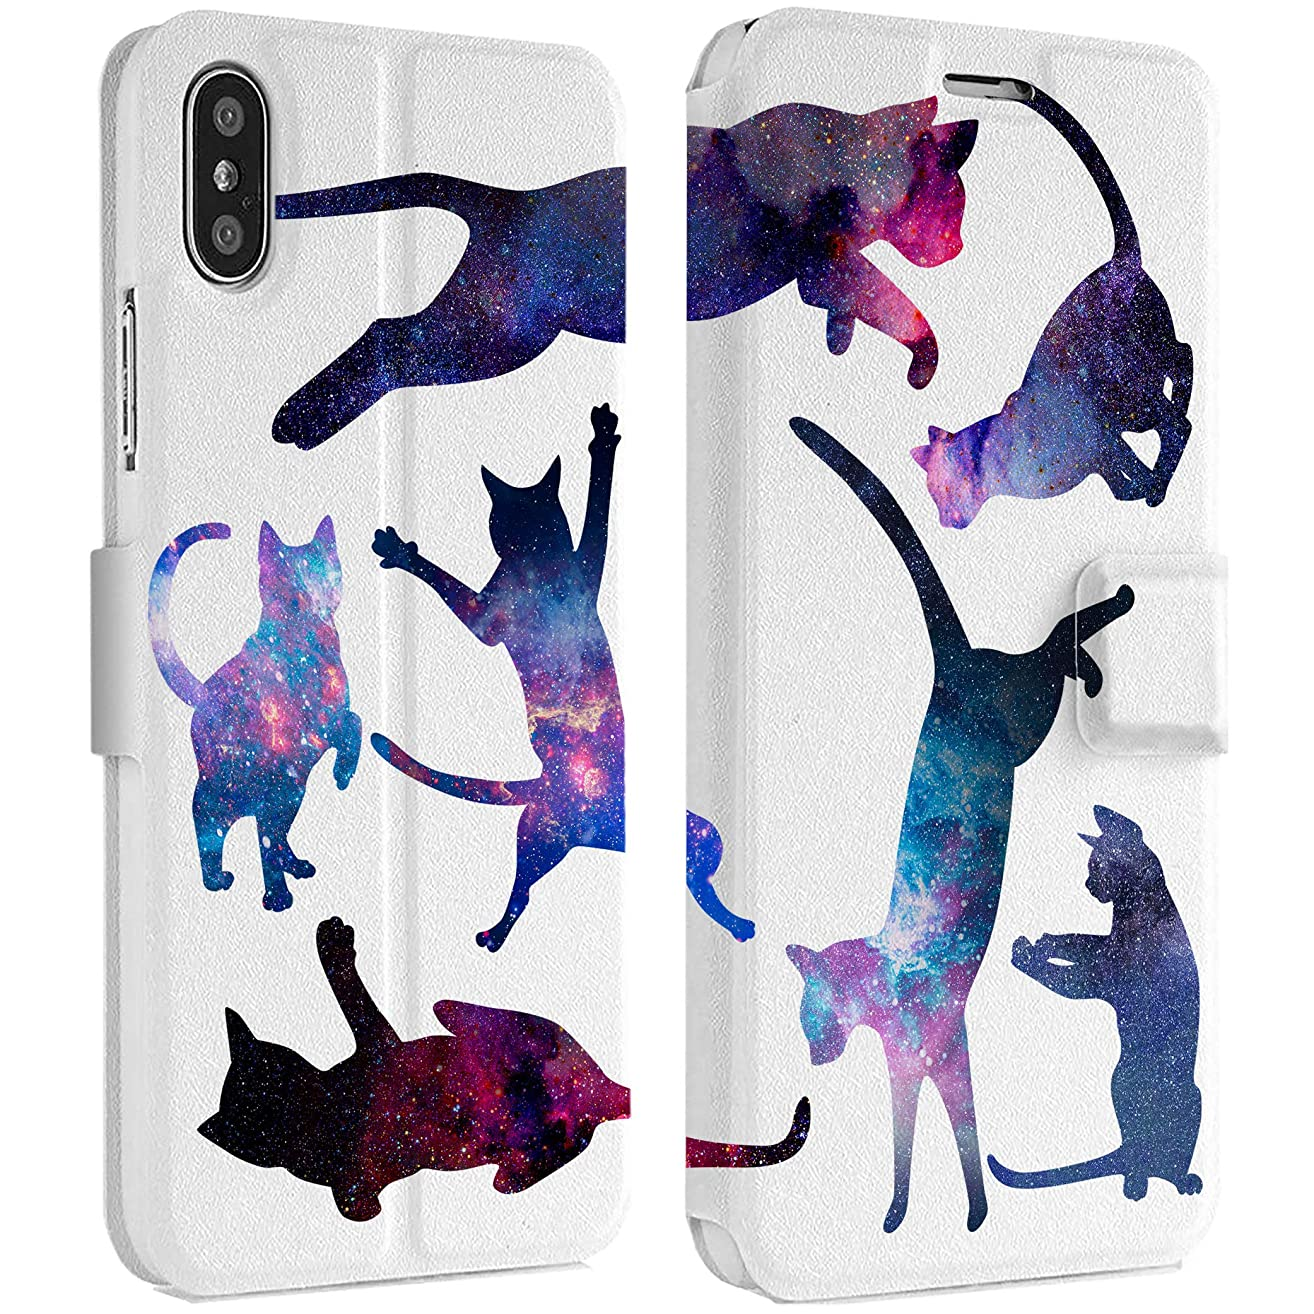 Wonder Wild Space Cat IPhone Wallet Case X/Xs Xs Max Xr 7/8 Plus 6/6s Plus Card Holder Accessories Smart Flip Clear Design Protection Cover Animal Kitten Universe Stars Infinity Constellation Dark